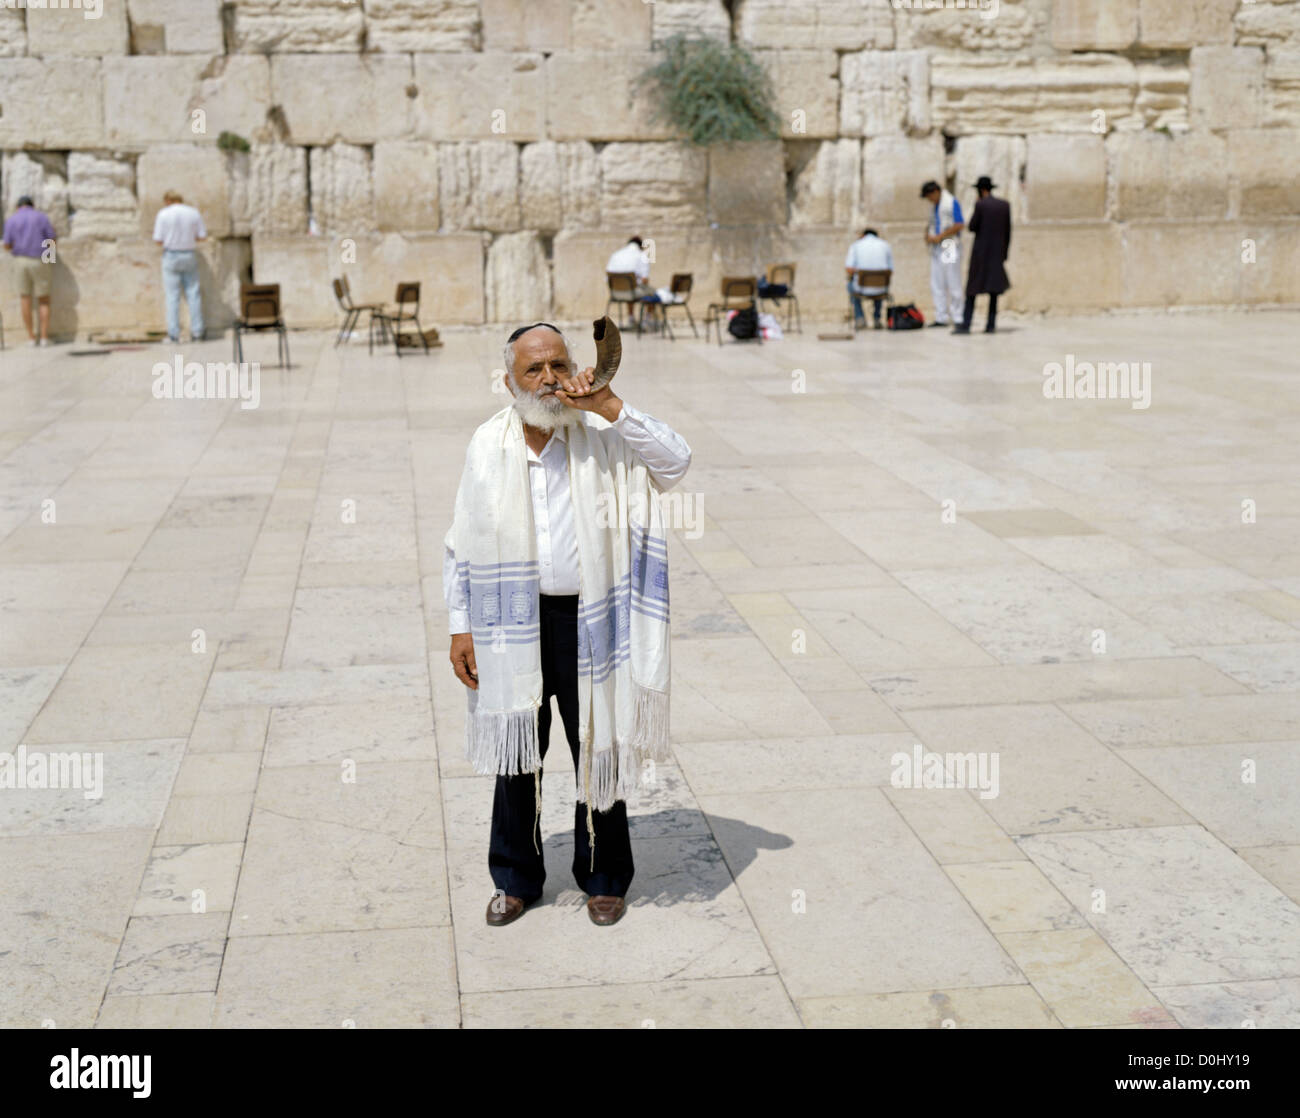 Orthodox jewish male, Shlomo Tovy blowing the shofar by the Wailing Wall, Jerusalem, Israel, Middle East - Stock Image